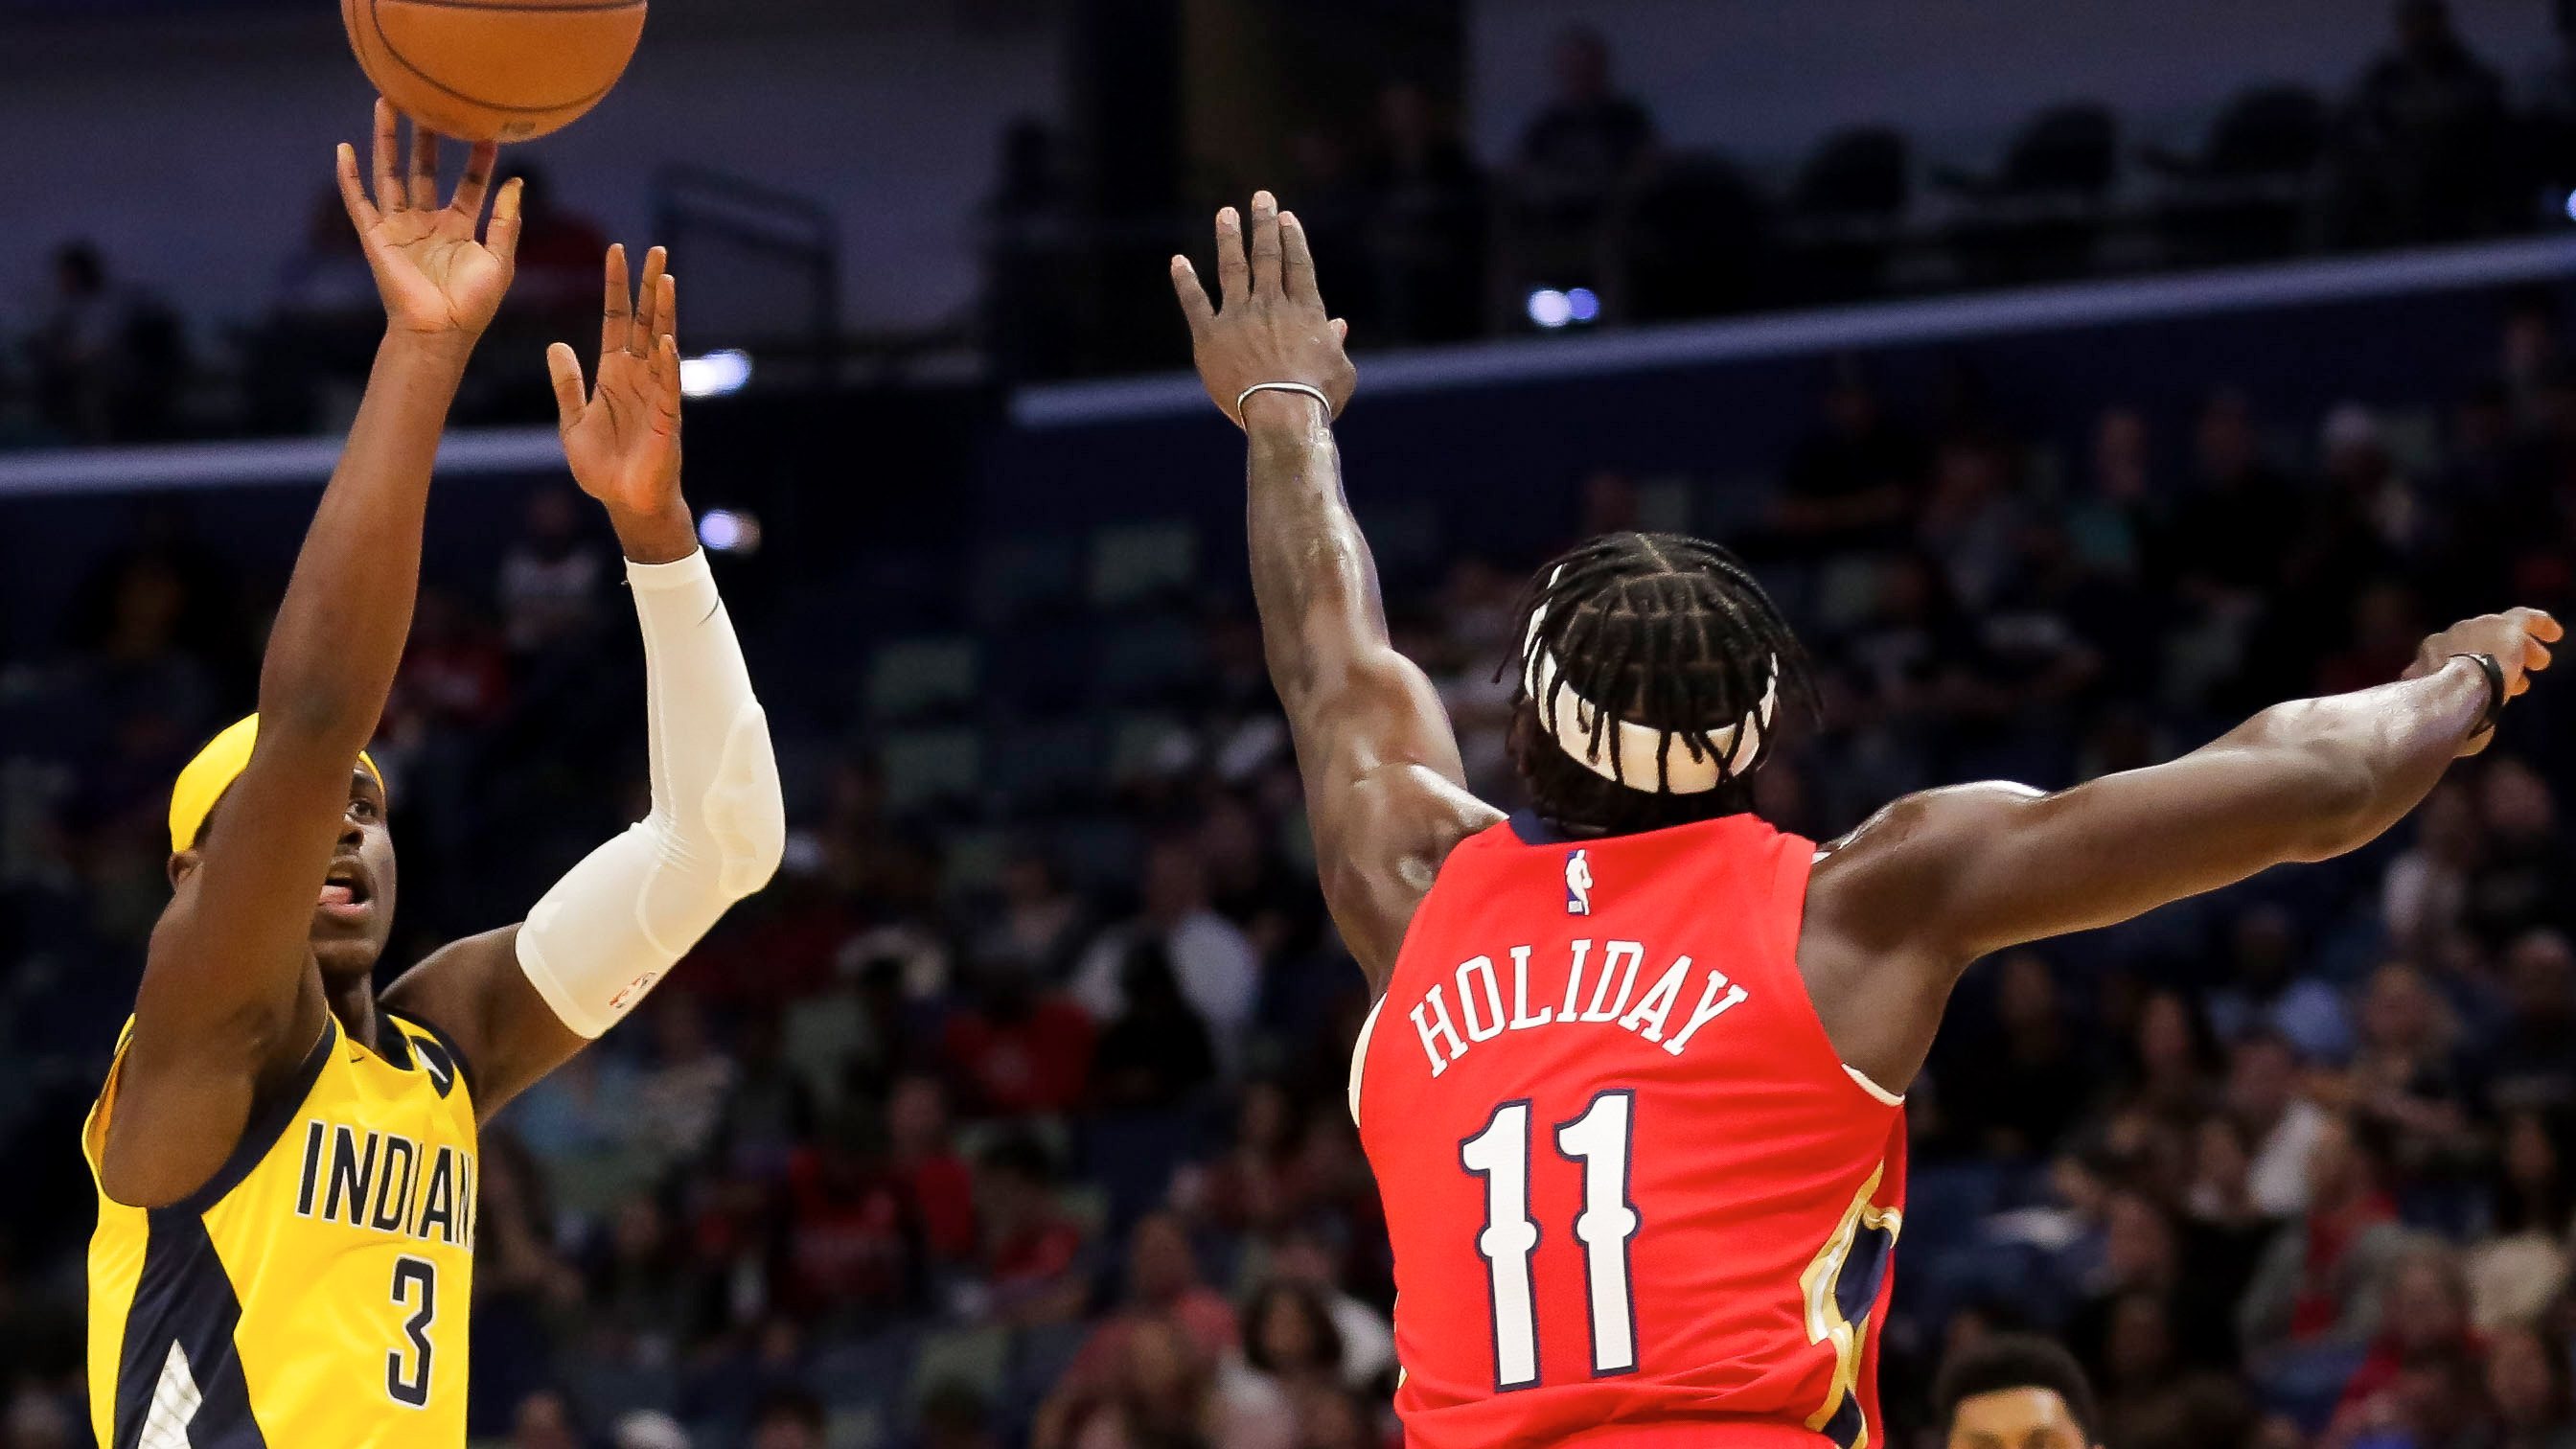 Aaron Holiday scores 25 in Pacers' 120-98 loss to Pelicans